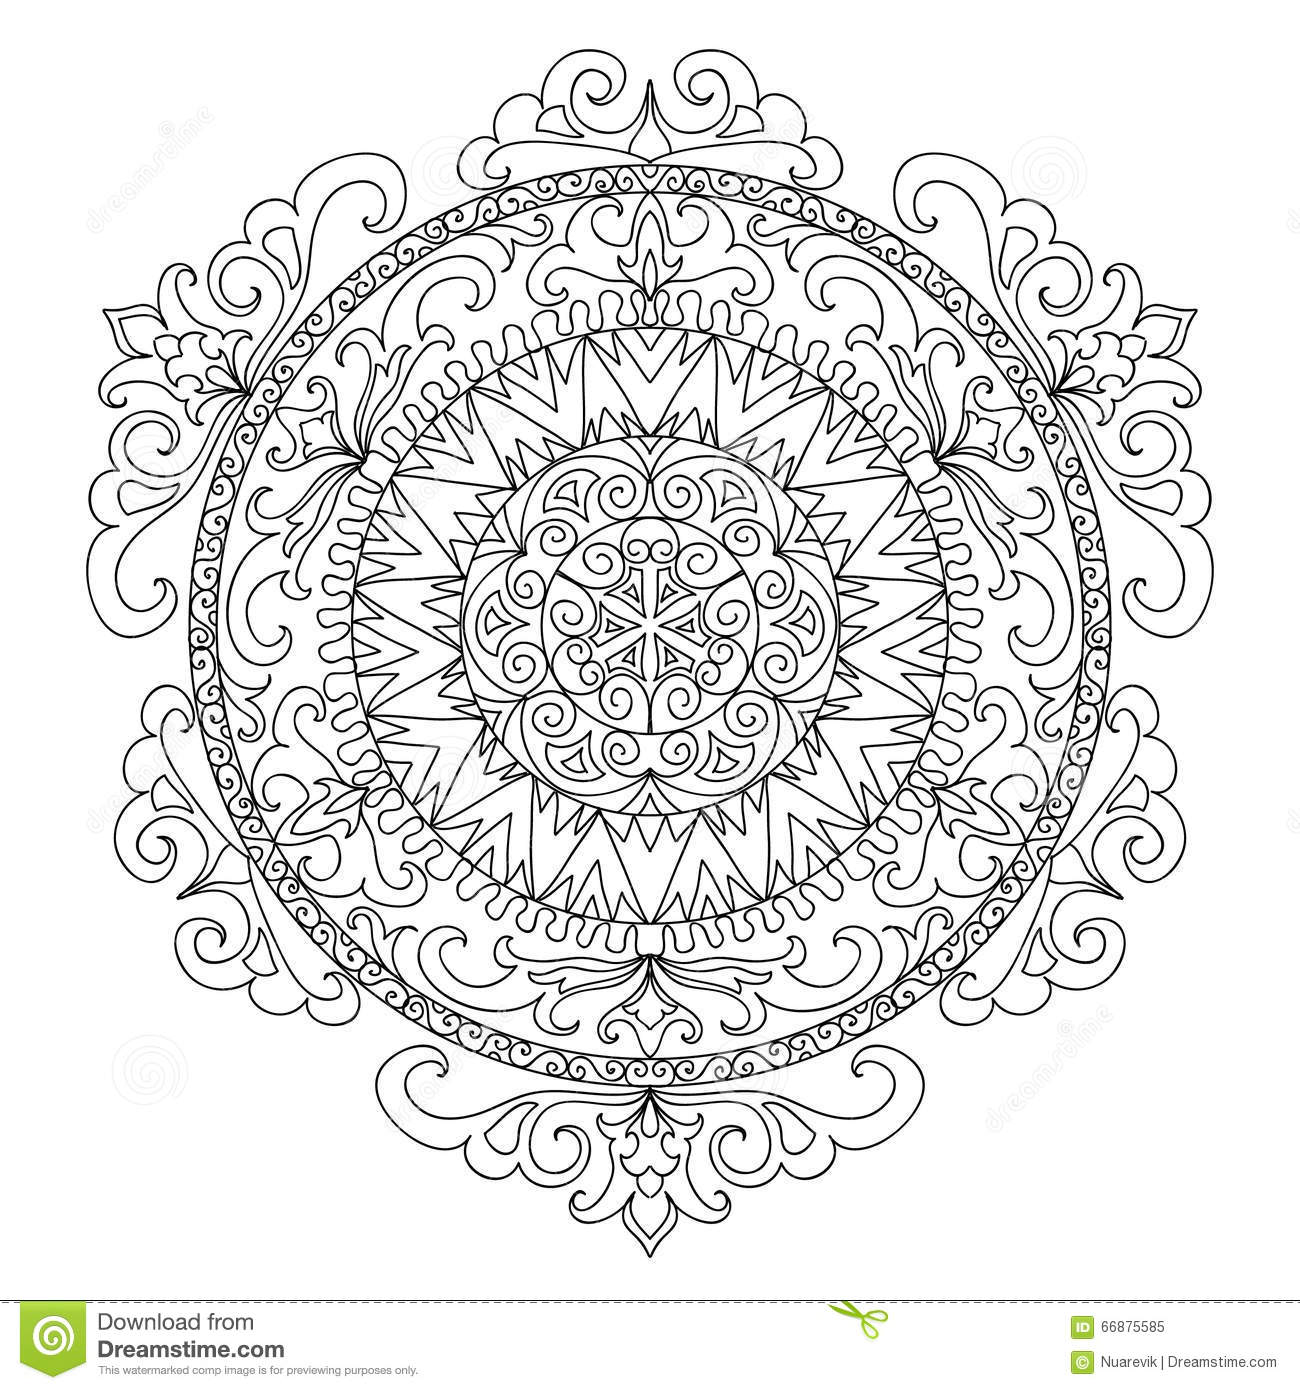 30 Best Byzantine Icon Coloring Pages images in 2020 | Byzantine ... | 1390x1300